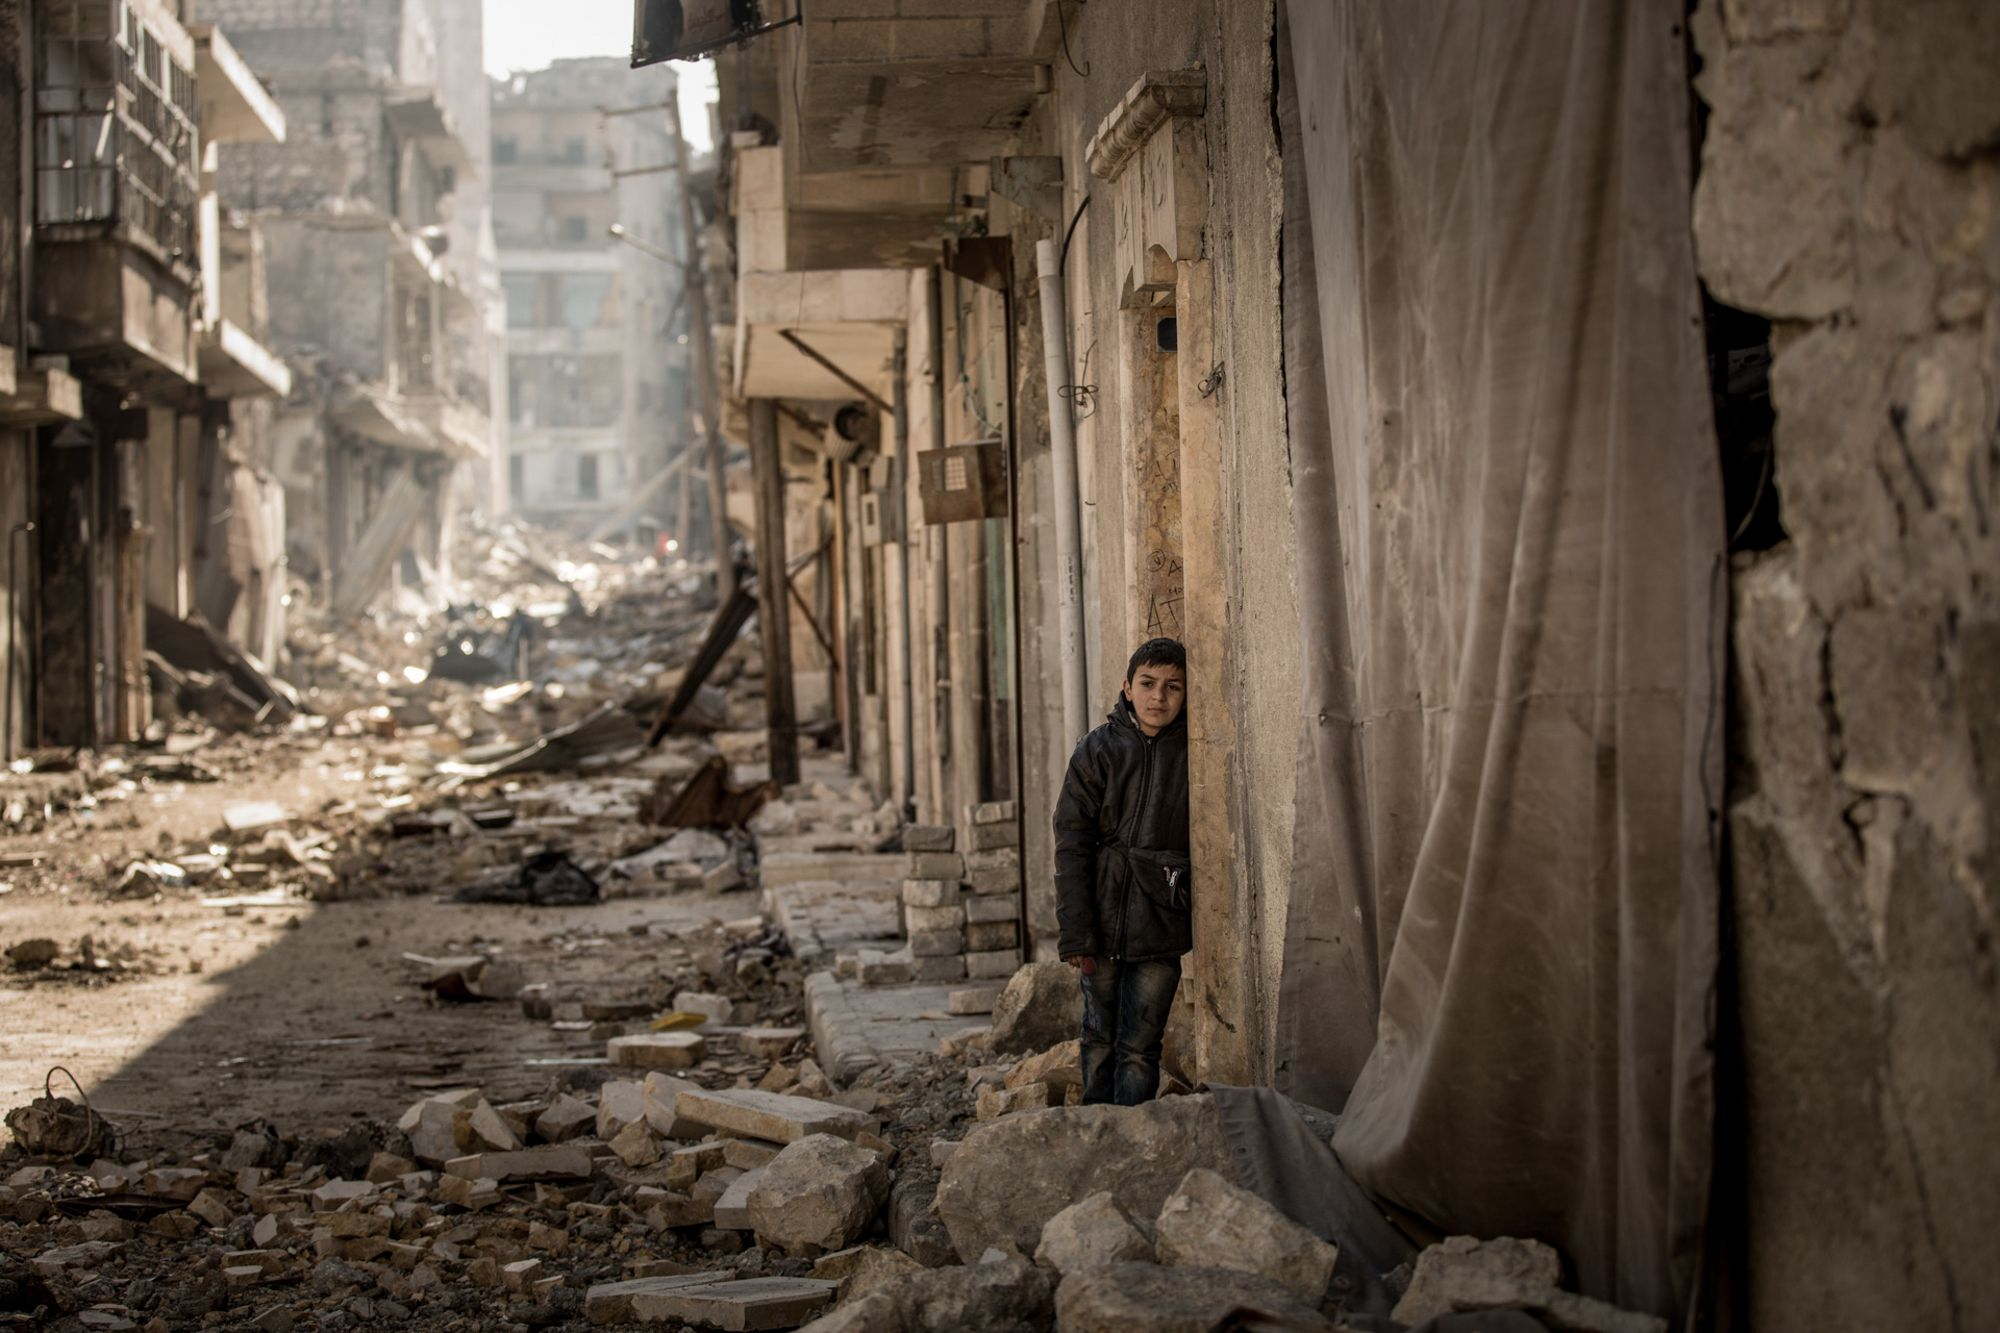 Syria, January 2017. A boy looks at the complete devastation outside of his own destroyed home. © Christian Werner/Zeitenspiegel. Juror's Pick, Magnum Photography Awards 2017.